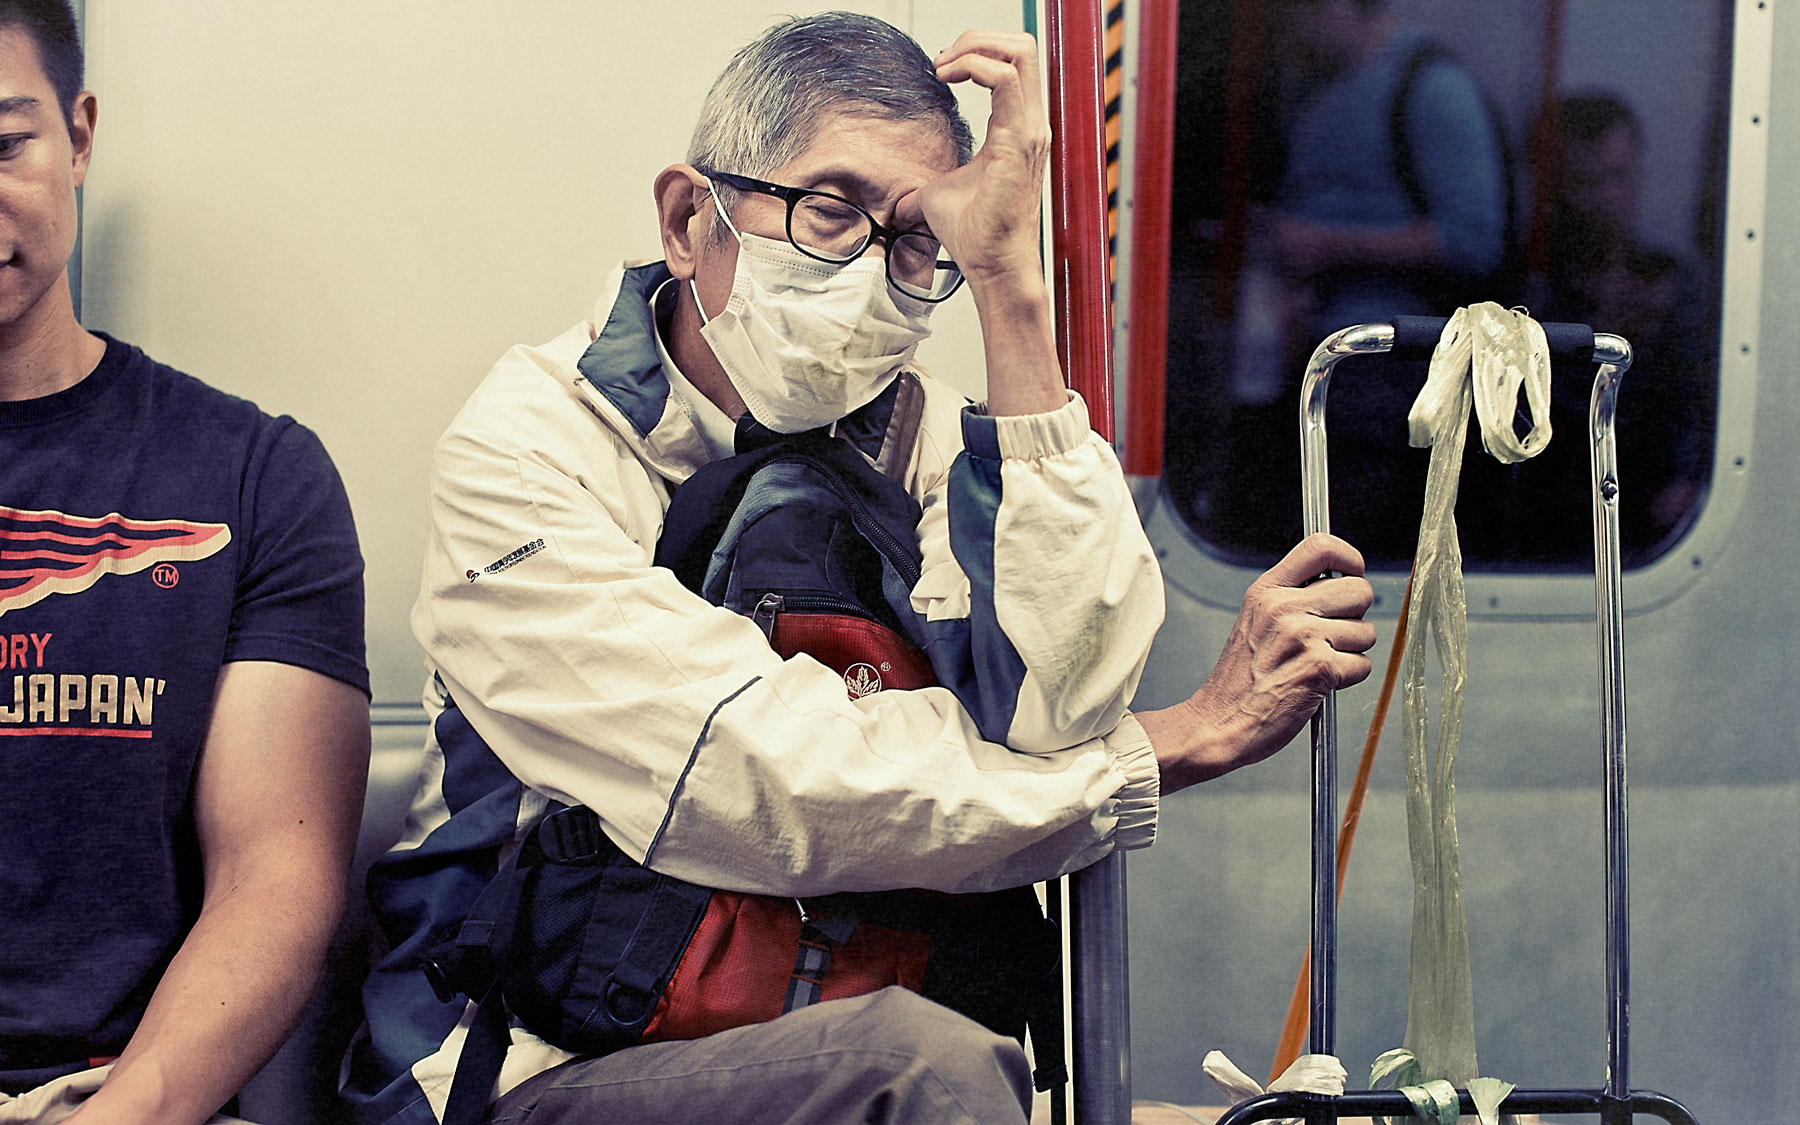 Good Boy Wolf Photographer, filmic portrait, Chinese man asleep on a train wearing a mask